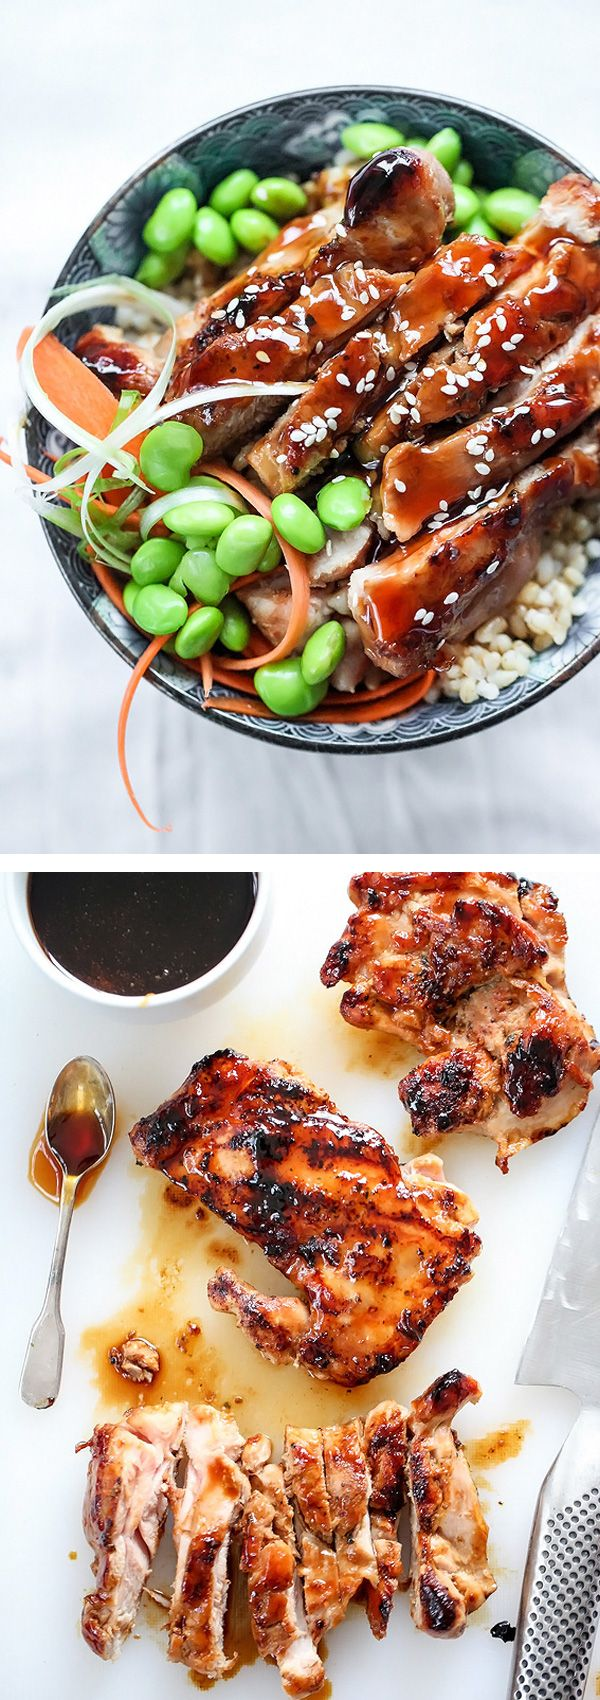 7 Spice Teriyaki Chicken Bowl with a homemade teriyaki glaze| foodiecrush.com